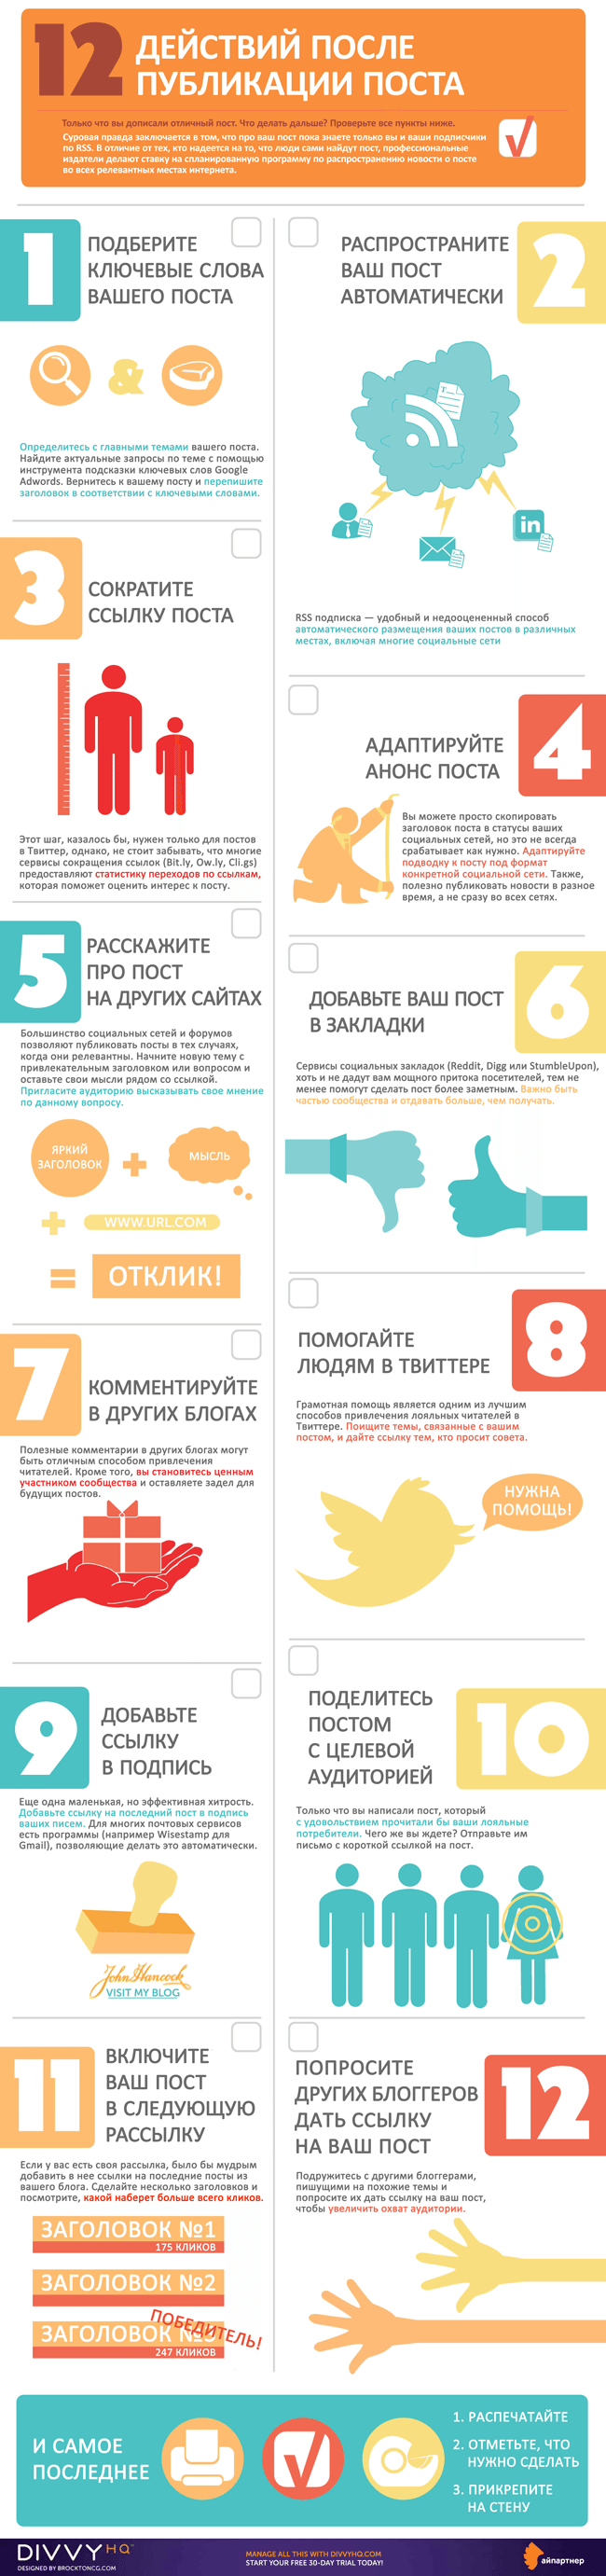 14-primerov-infografiki-po-kontent-marketingu_1